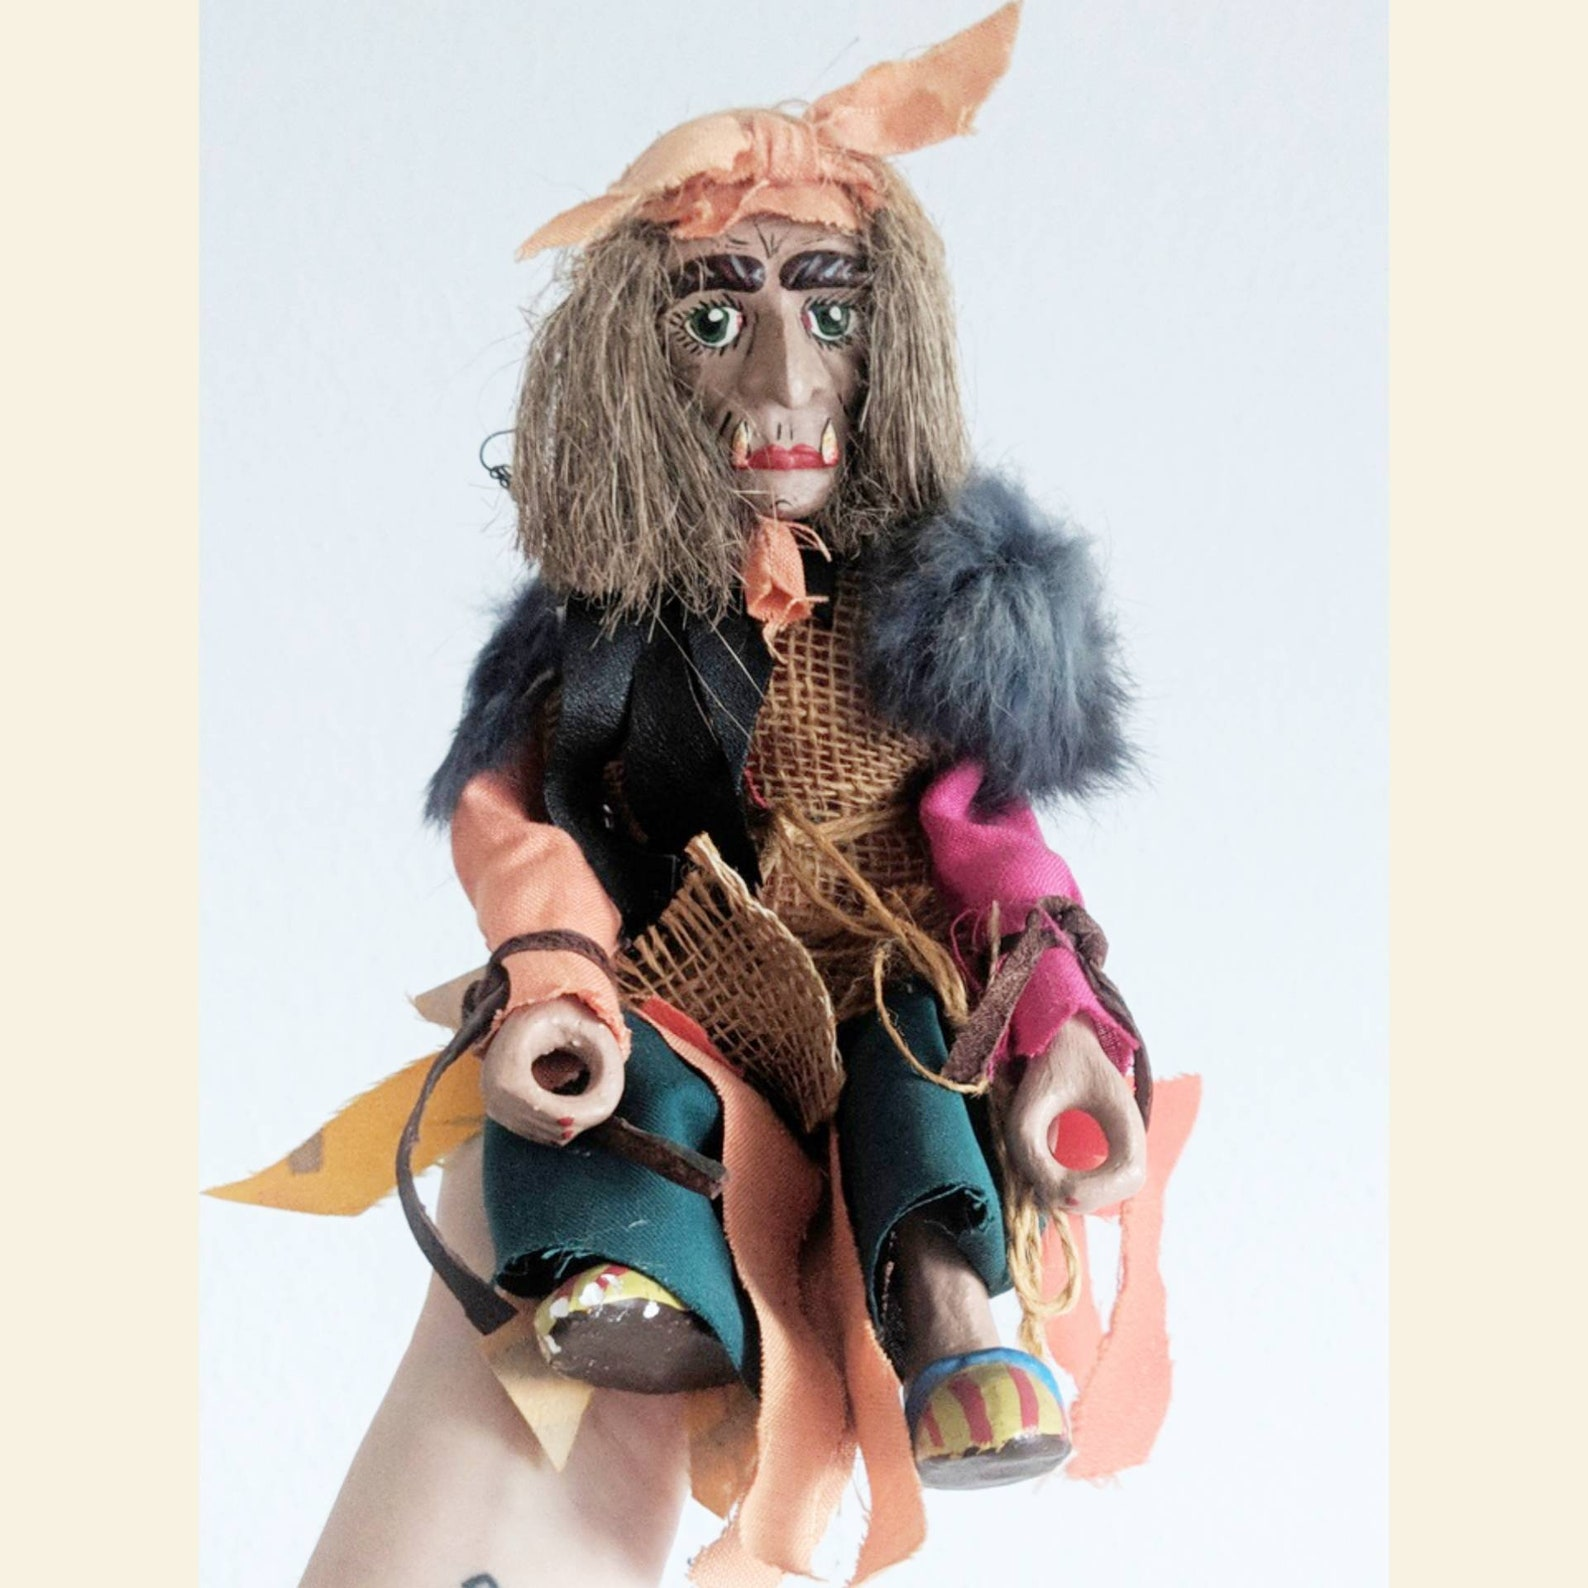 Folk art witch doll, Germany, ceramic hand painted berchta, fairytales folklore